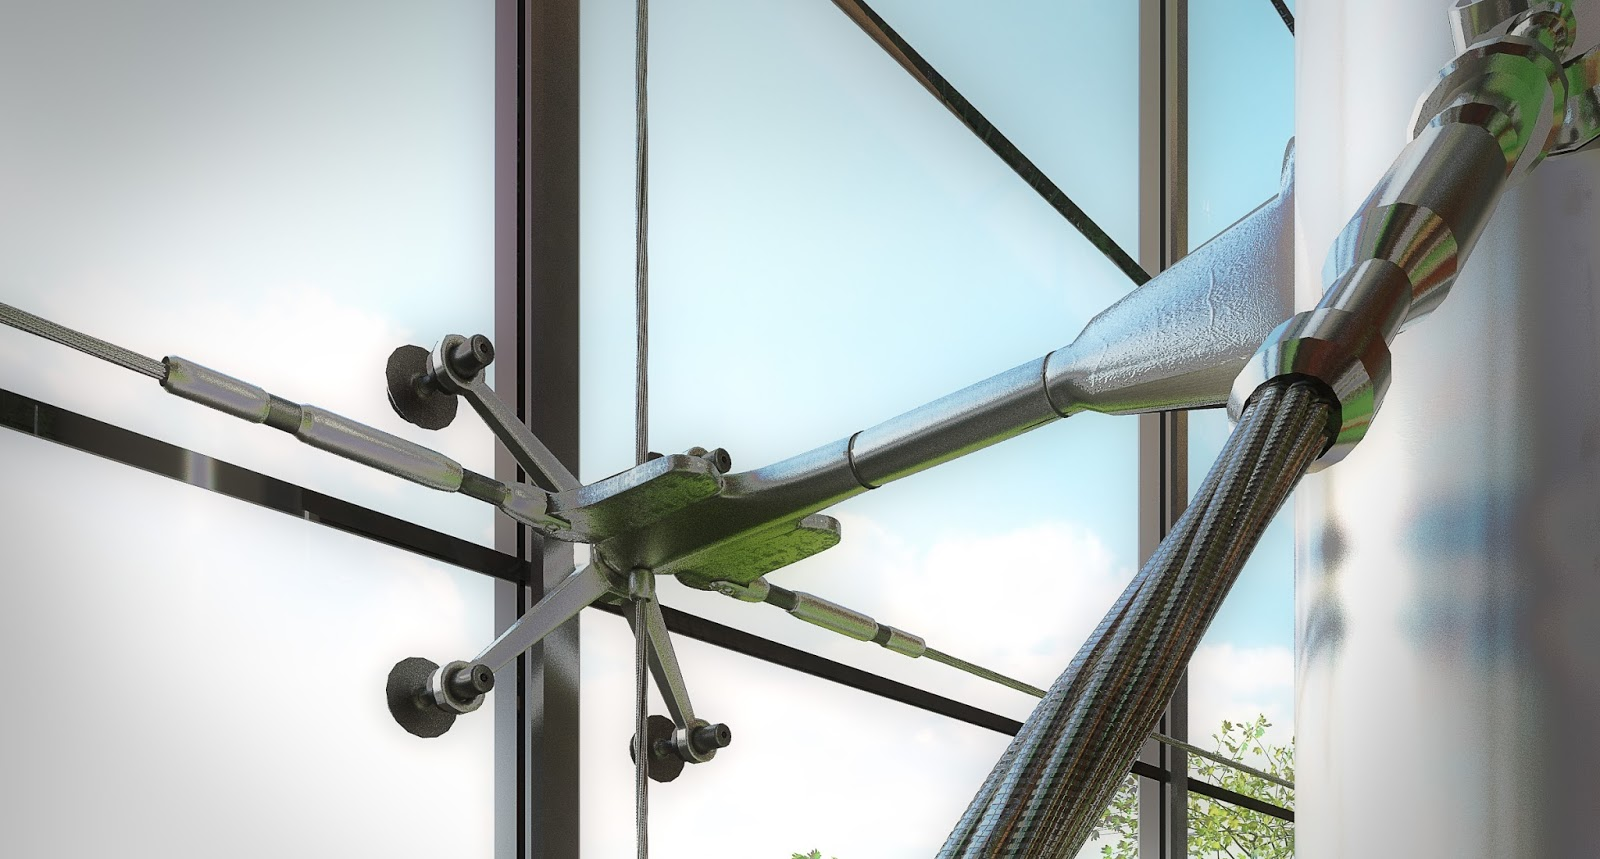 Spider Curtain Wall System : Spider clamp curtain wall system gopelling